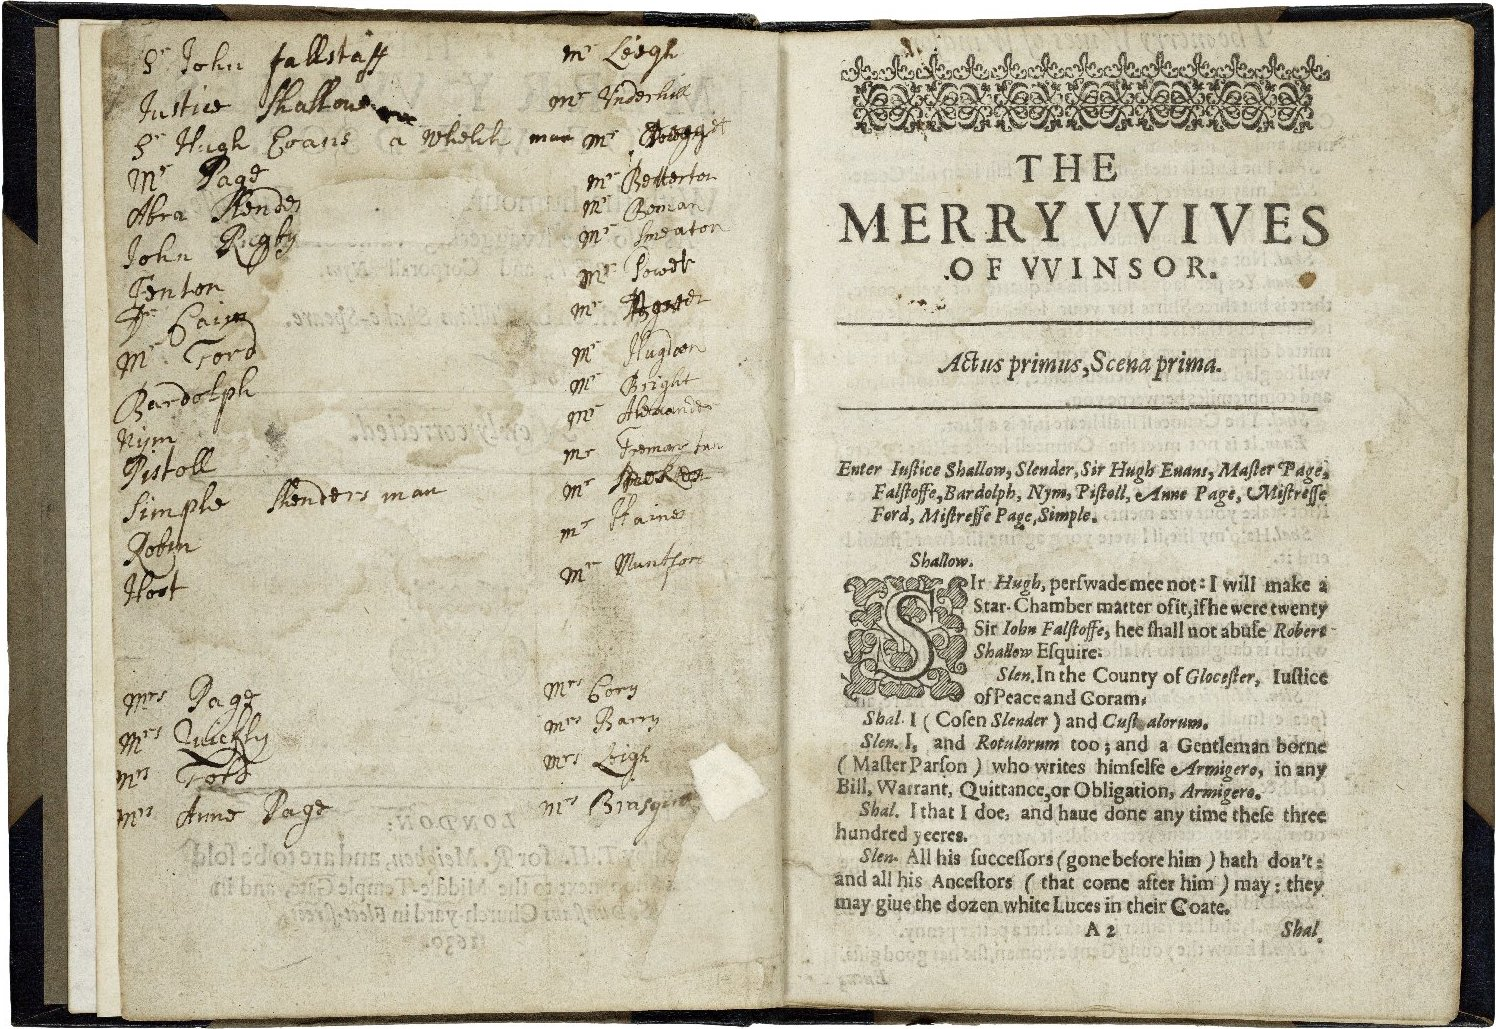 Merry Wives of Windsor. 1630. Folger Shakespeare Library.